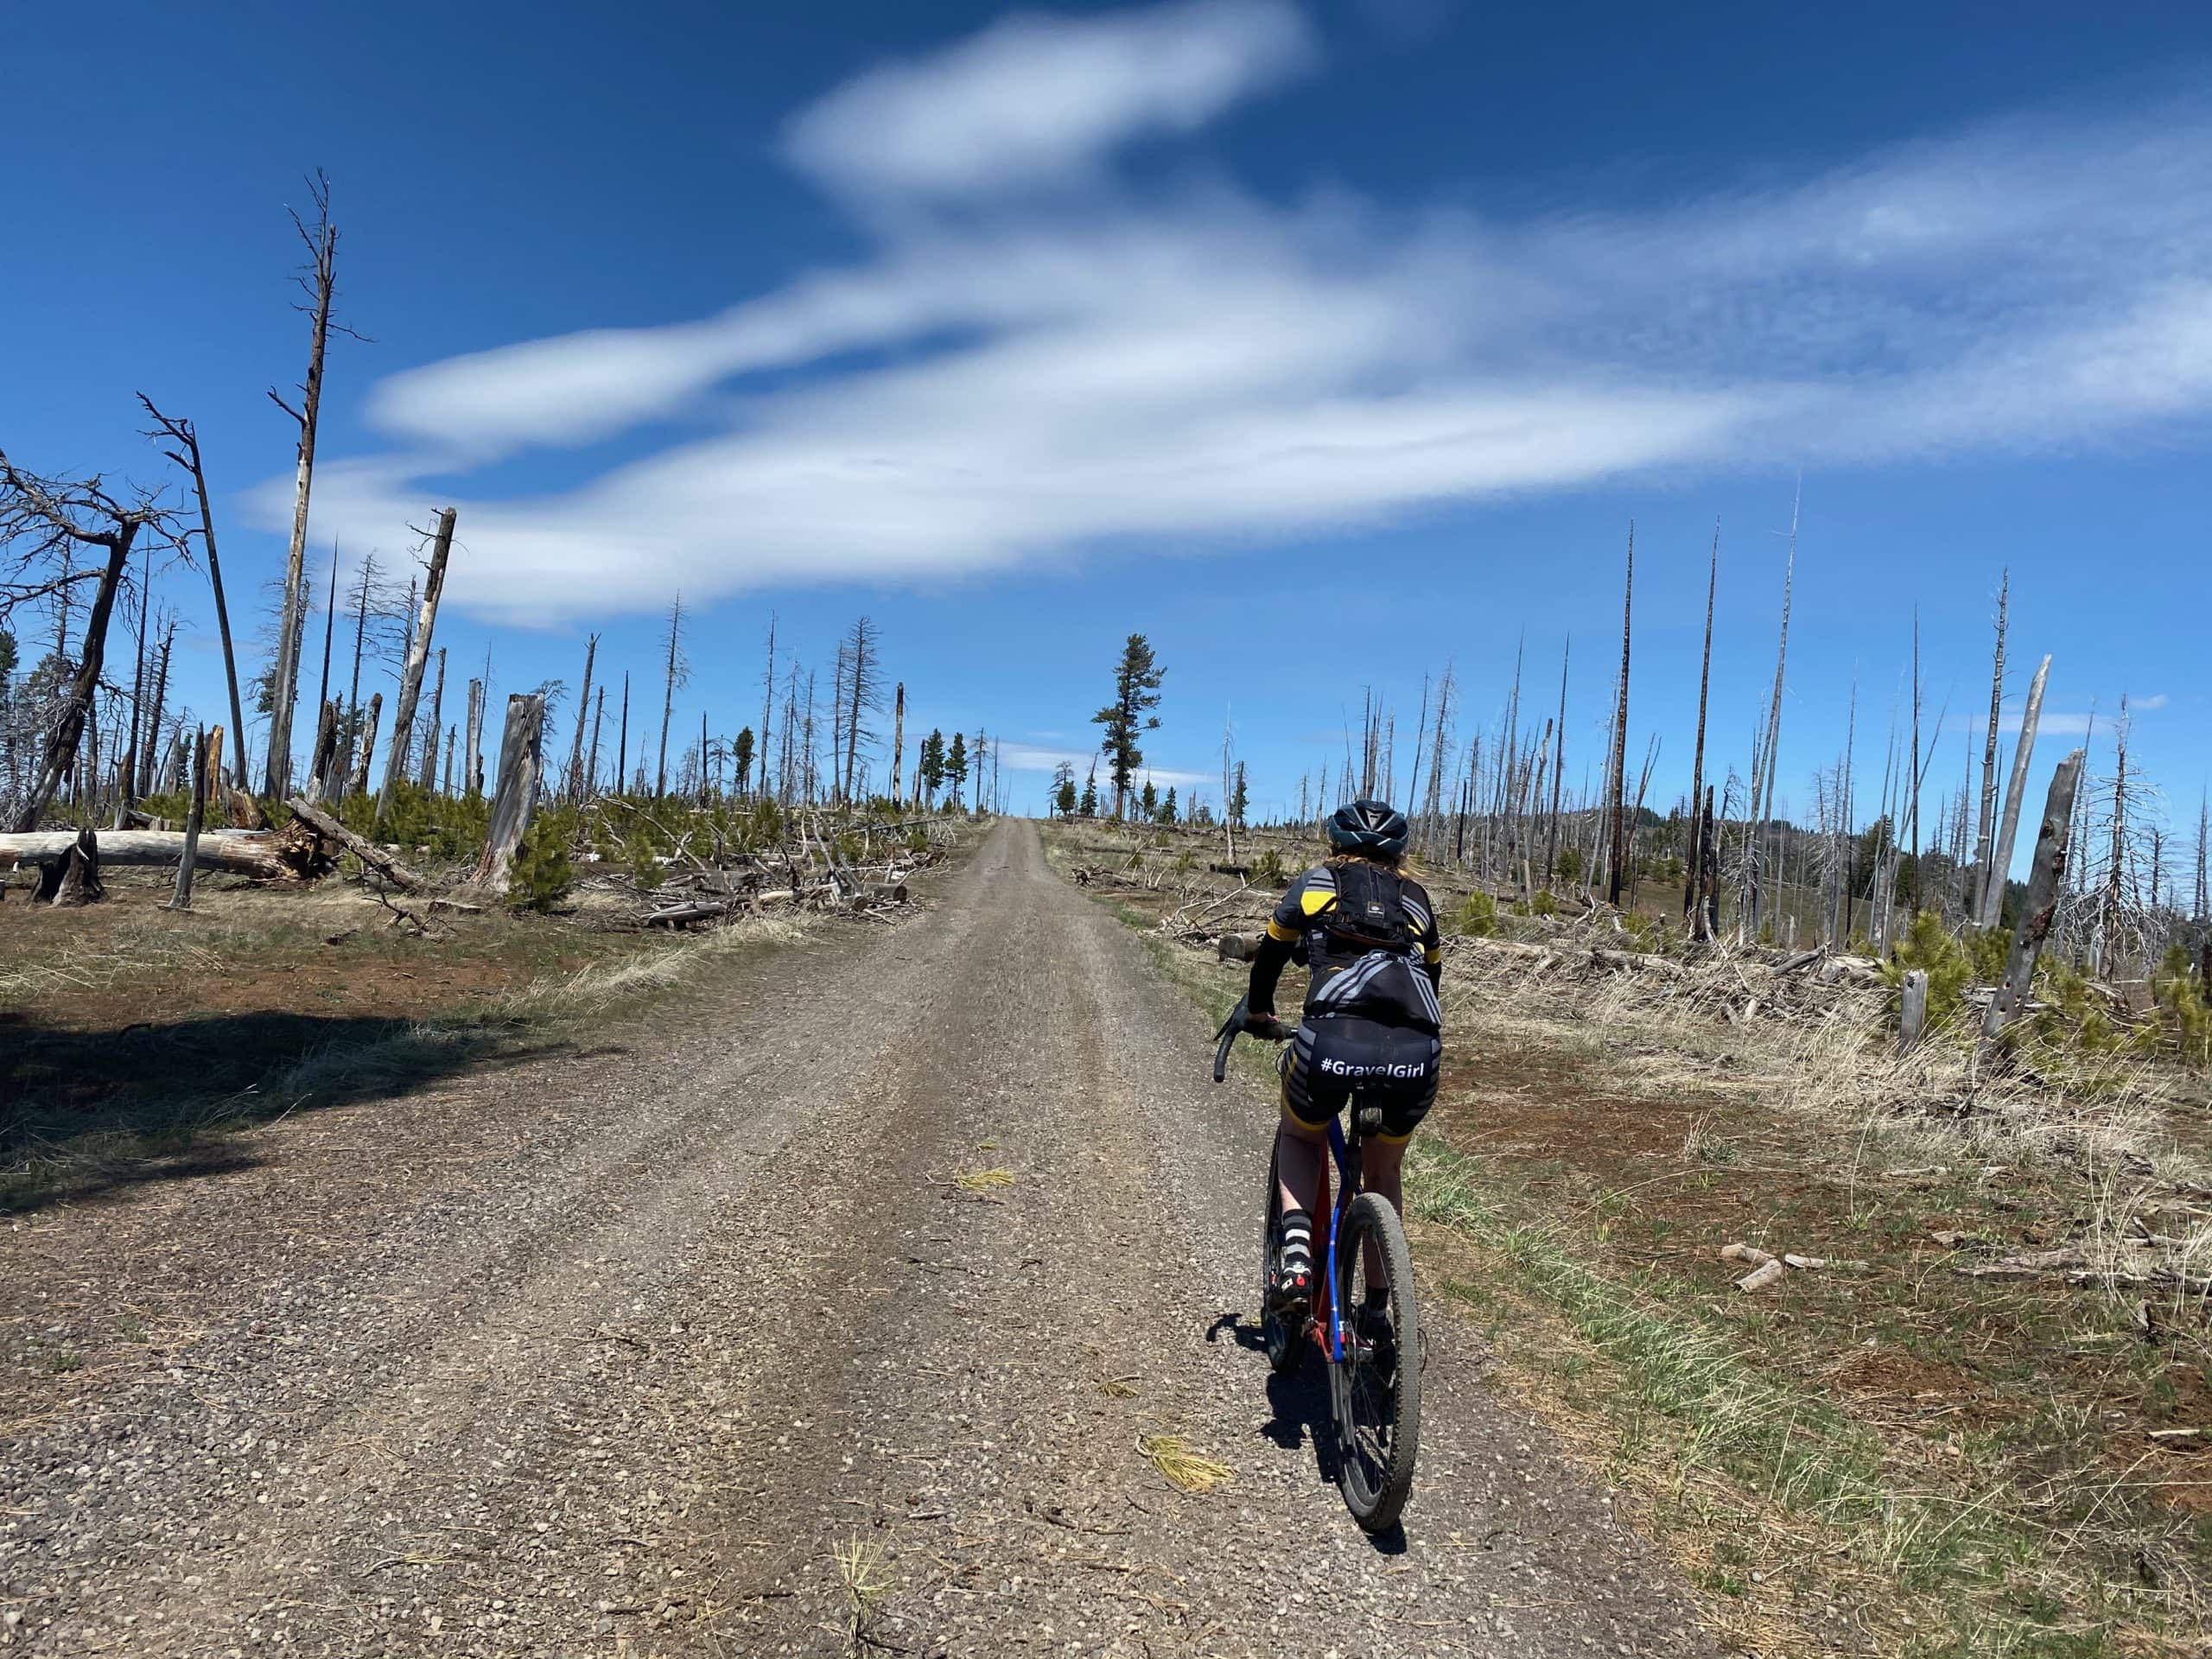 Cyclist on gravel road near the Black Canyon Wilderness area in the Ochoco National forest.